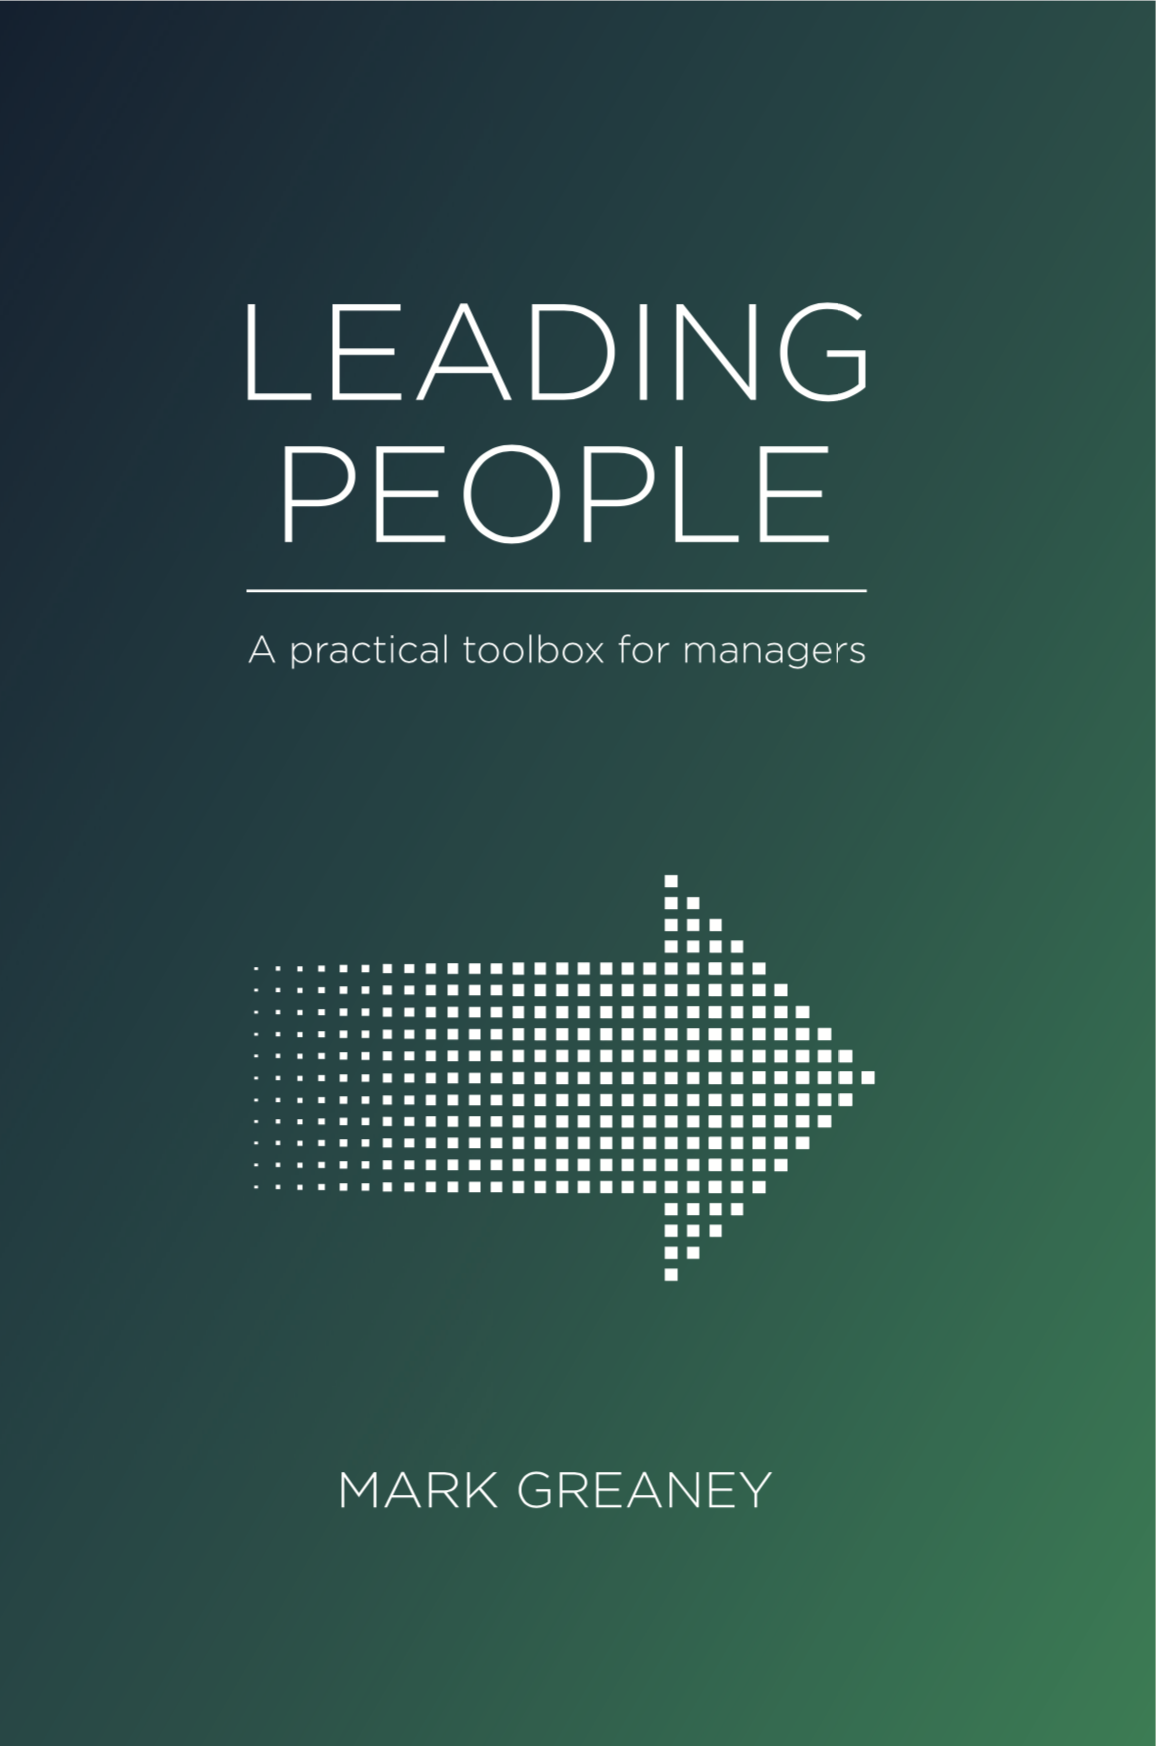 Mark Greaney - Leading People Front cover.png